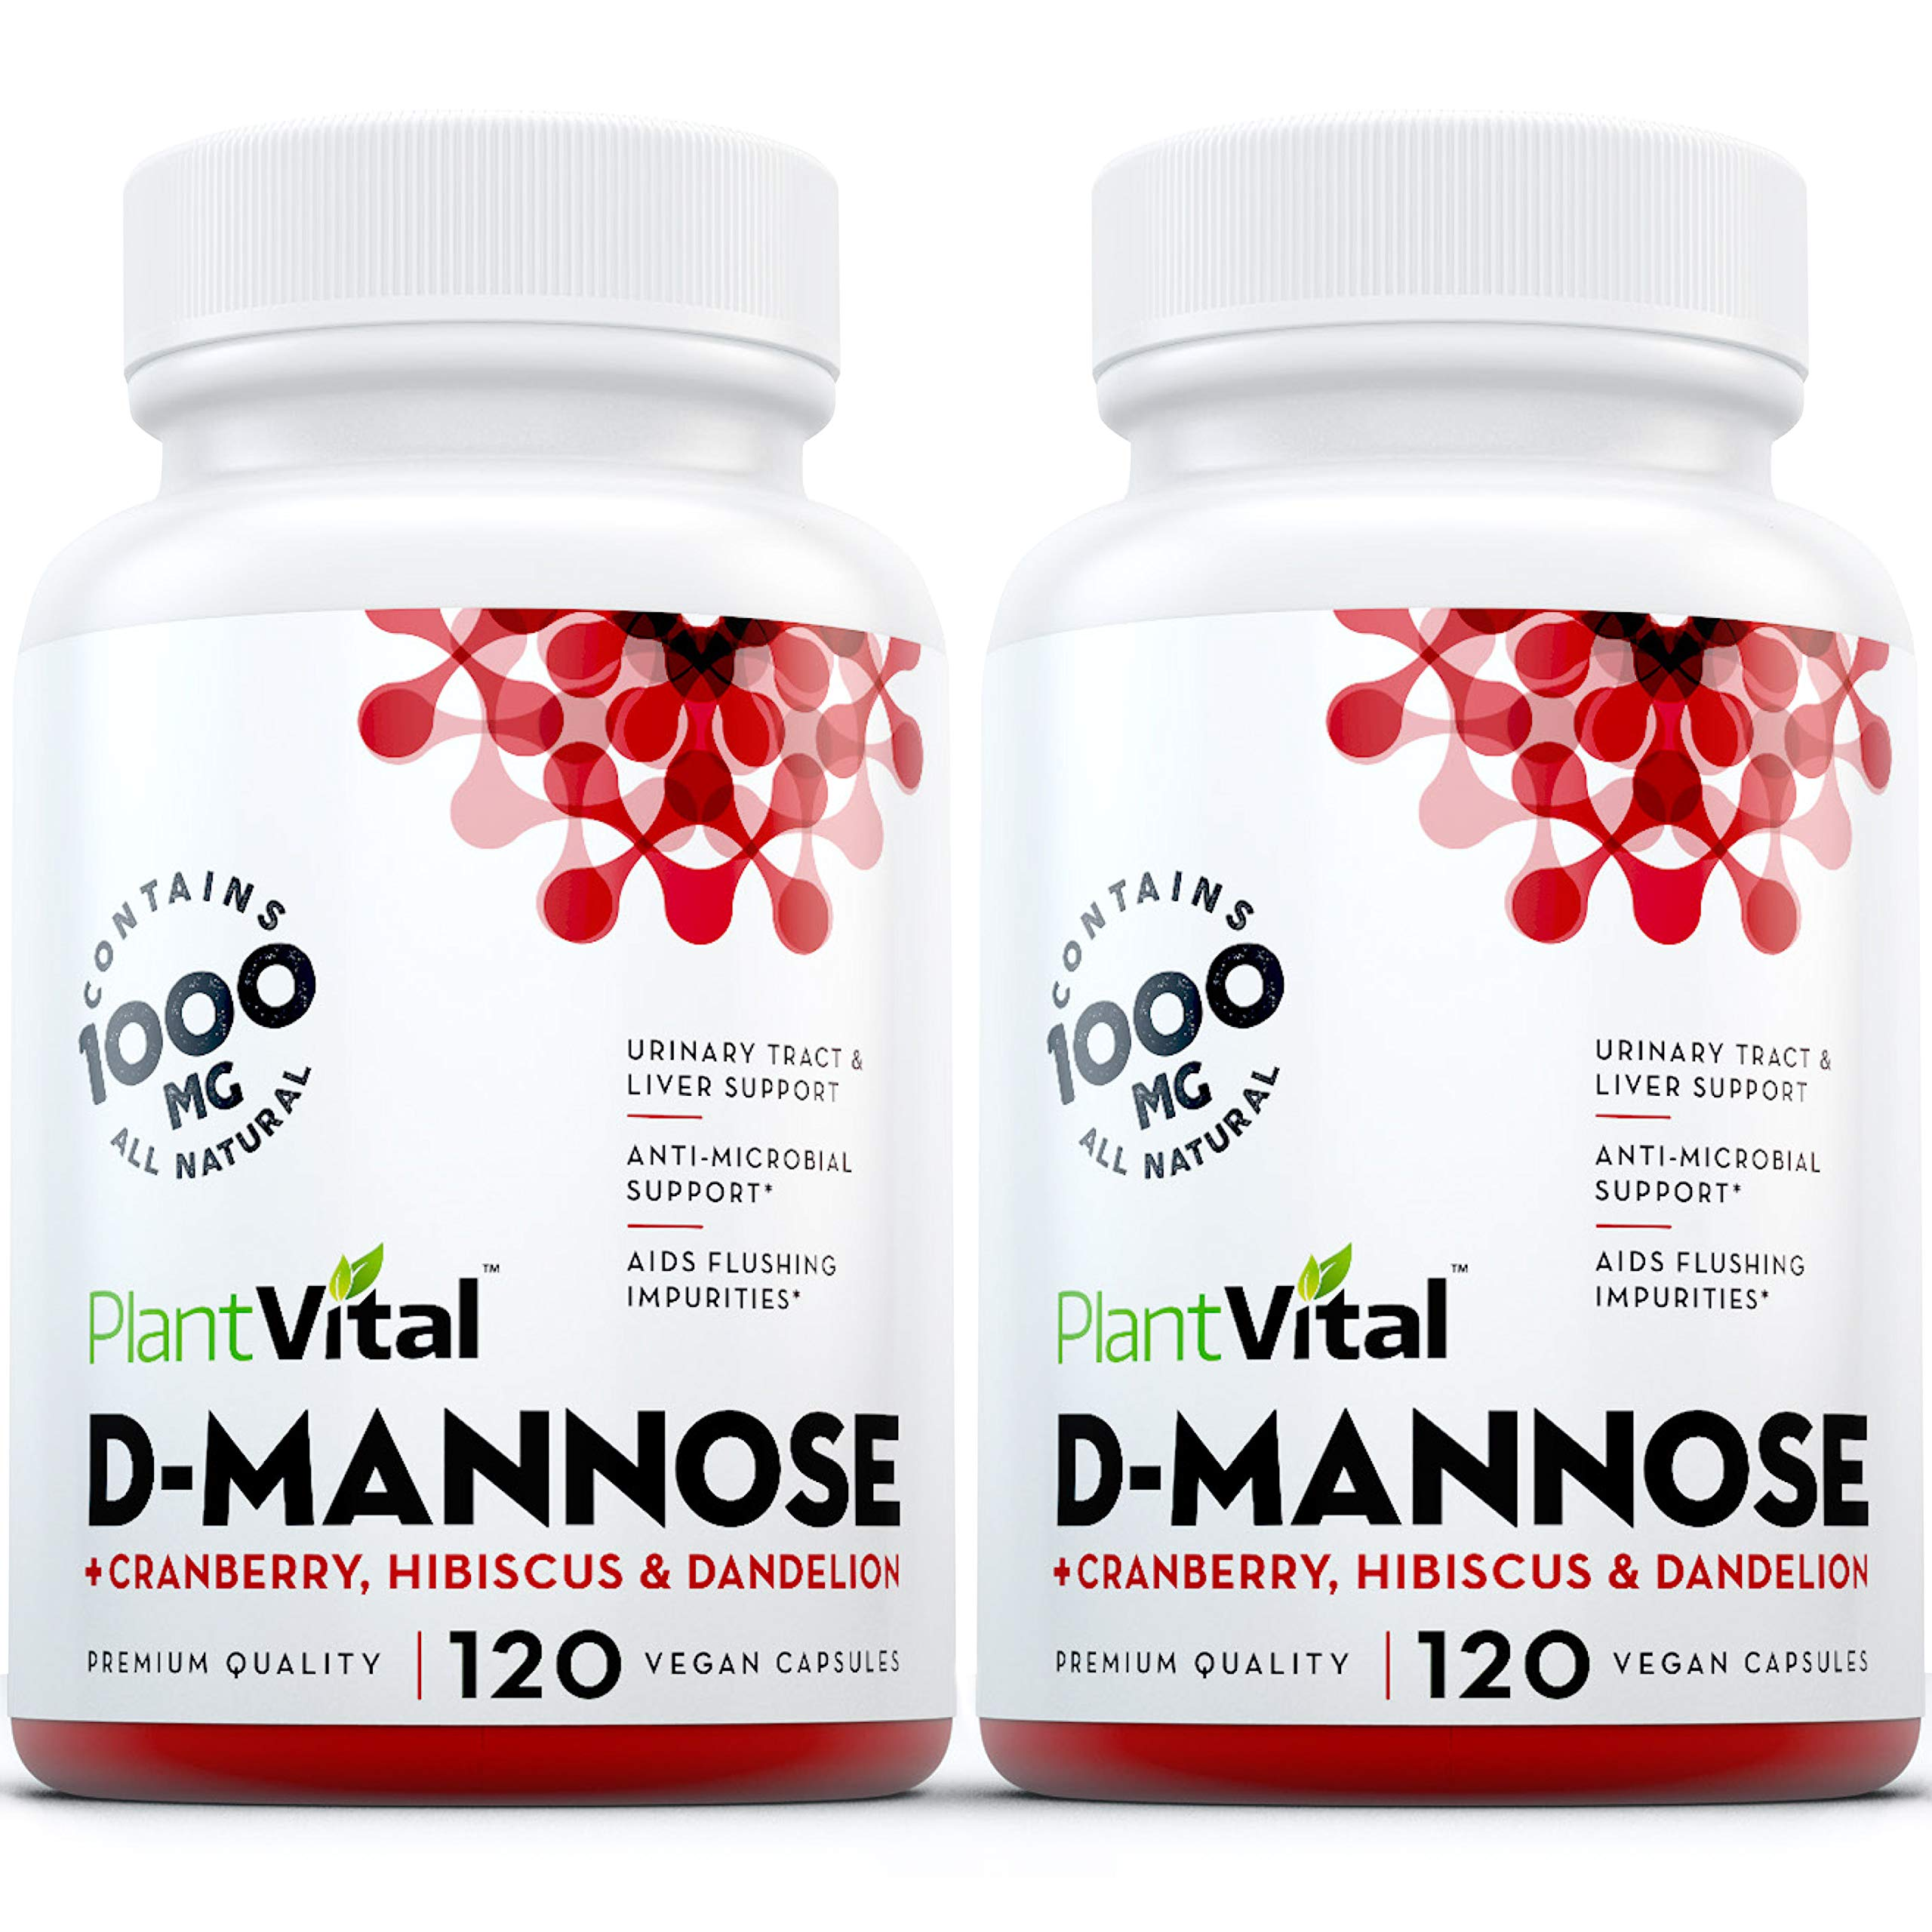 New! D-Mannose 1000mg w Cranberry [HIGH Potency] Urinary Tract Treatment, Bladder Control, Kidney Cleanse & UTI Support. 100% Natural Detox. Plus Hibiscus & Dandelion. by Plantvital